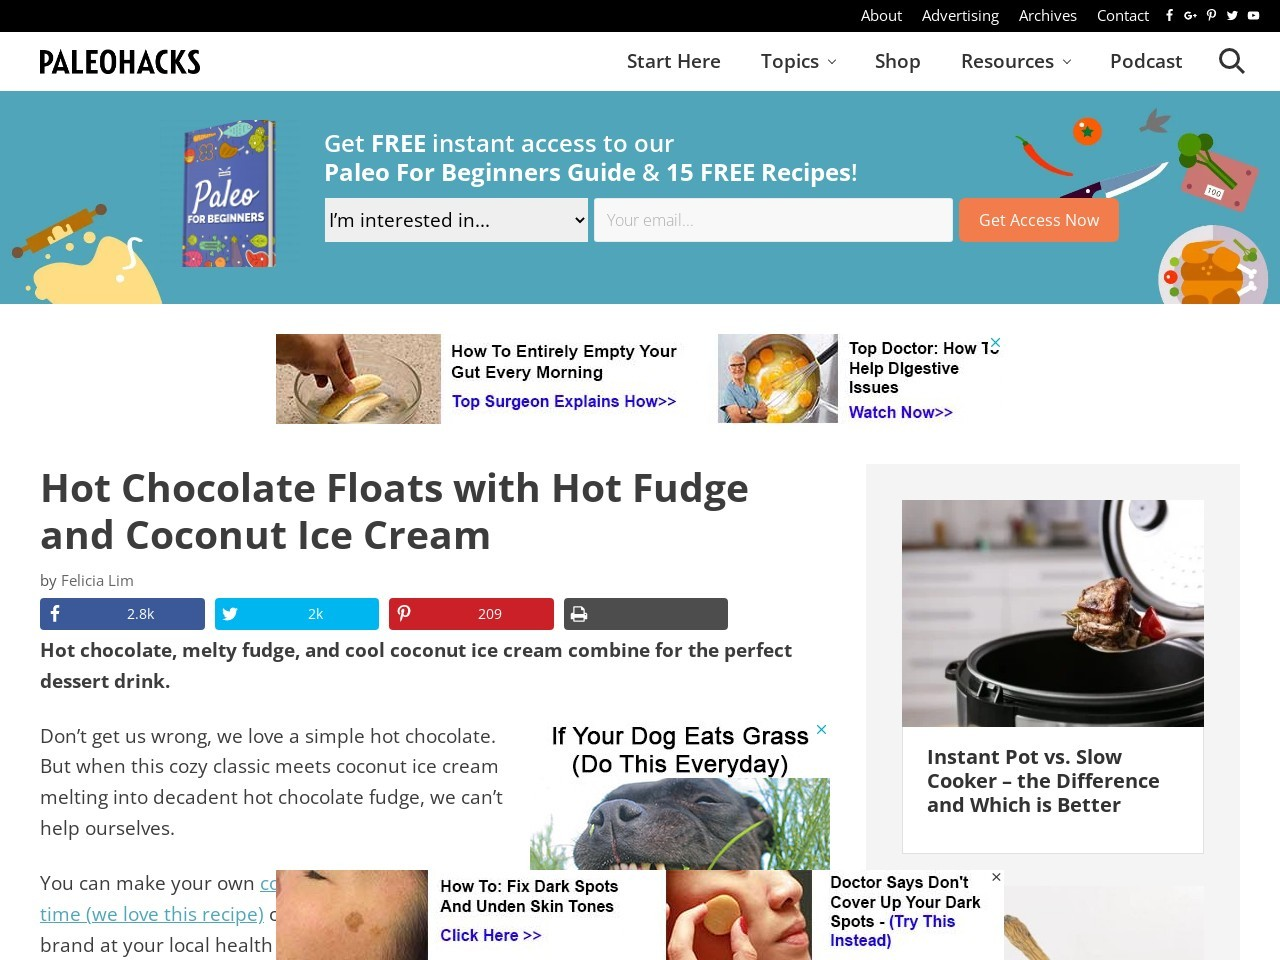 Hot Chocolate Floats with Hot Fudge and Coconut Ice Cream